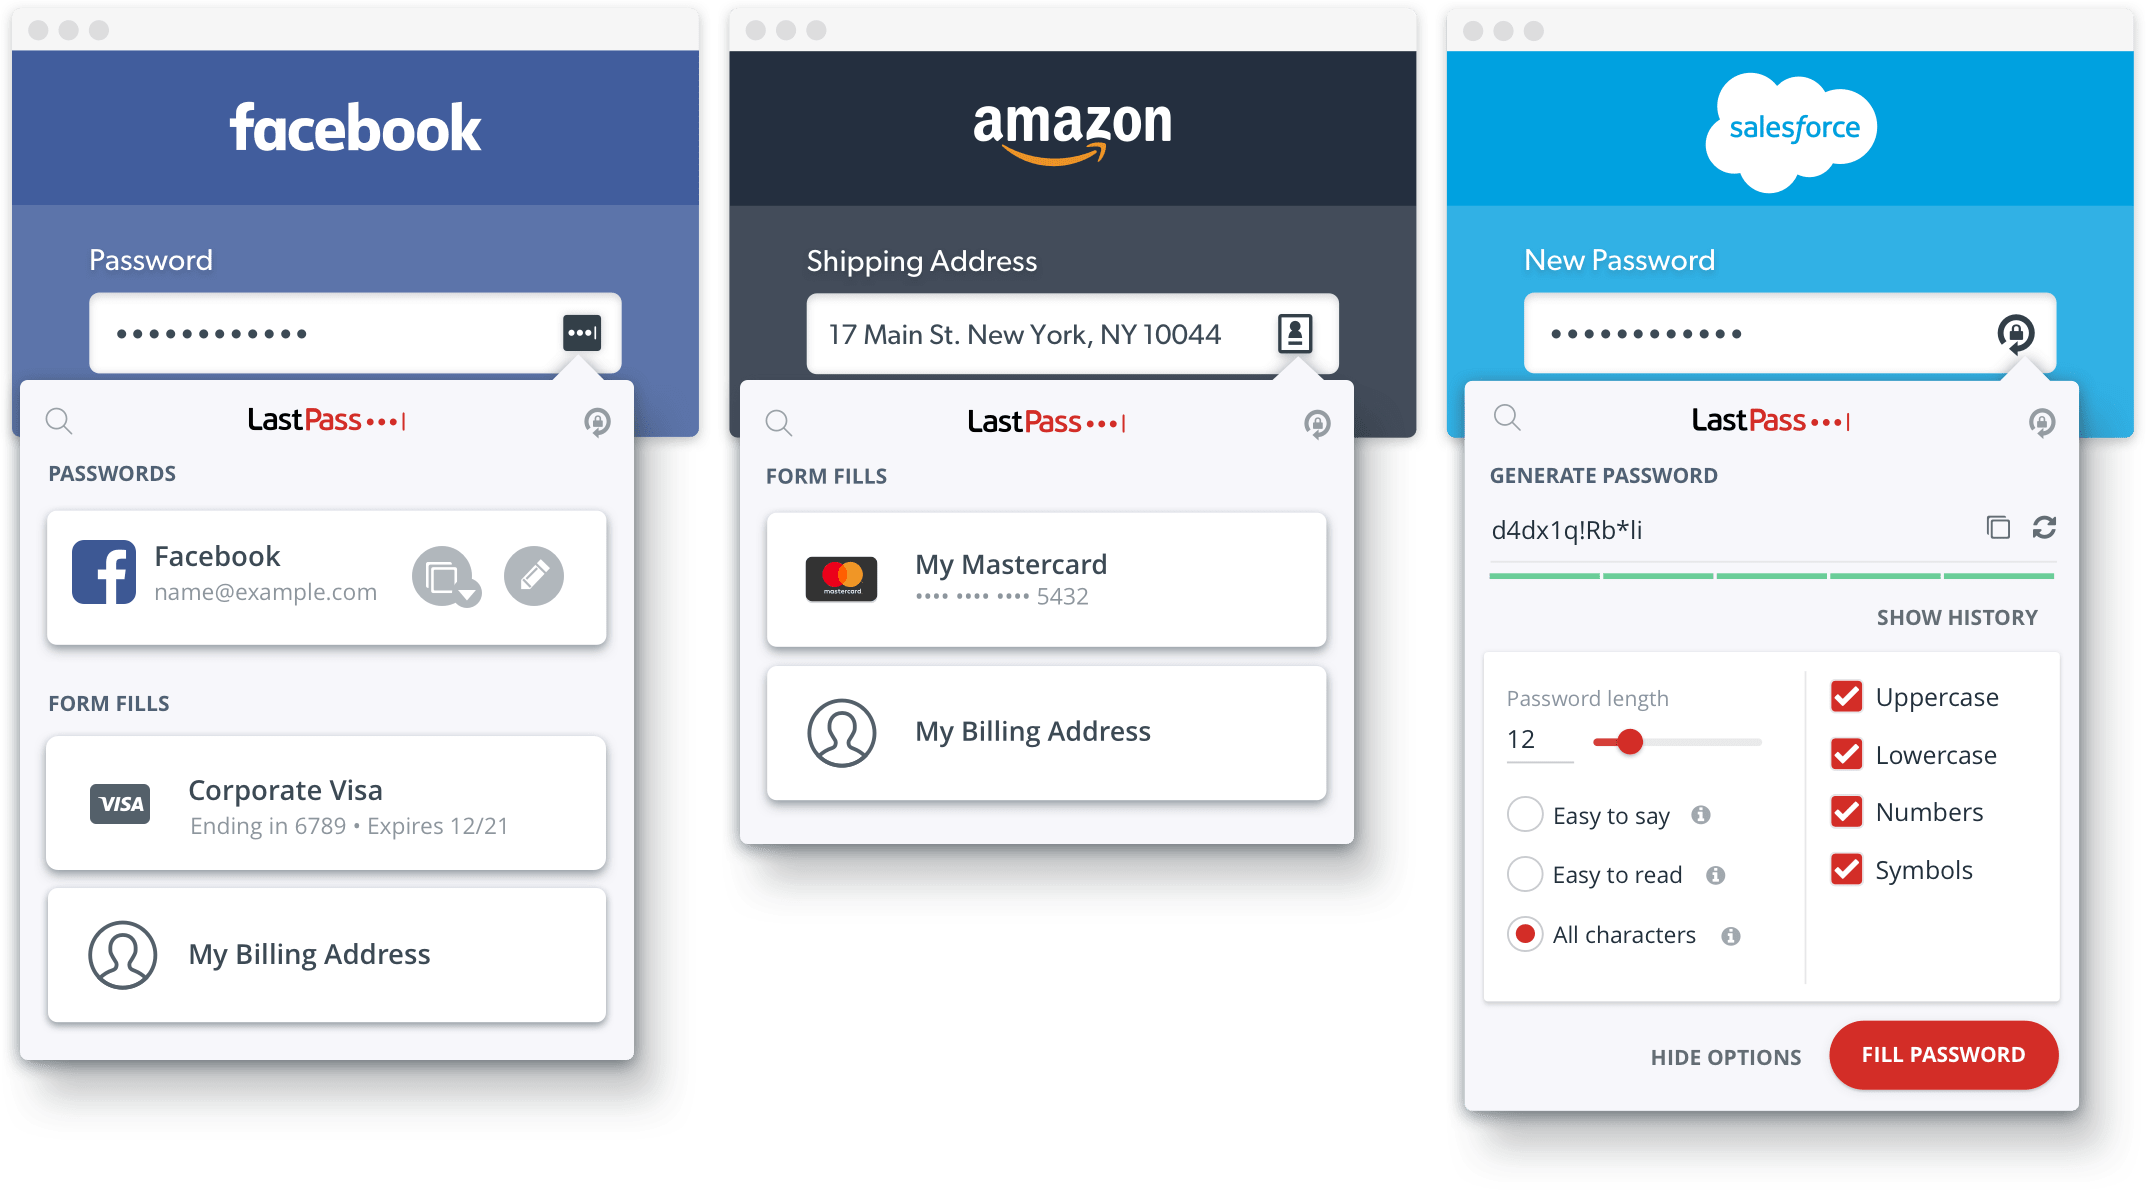 1 Password Manager & Vault App, Enterprise SSO & MFA | LastPass